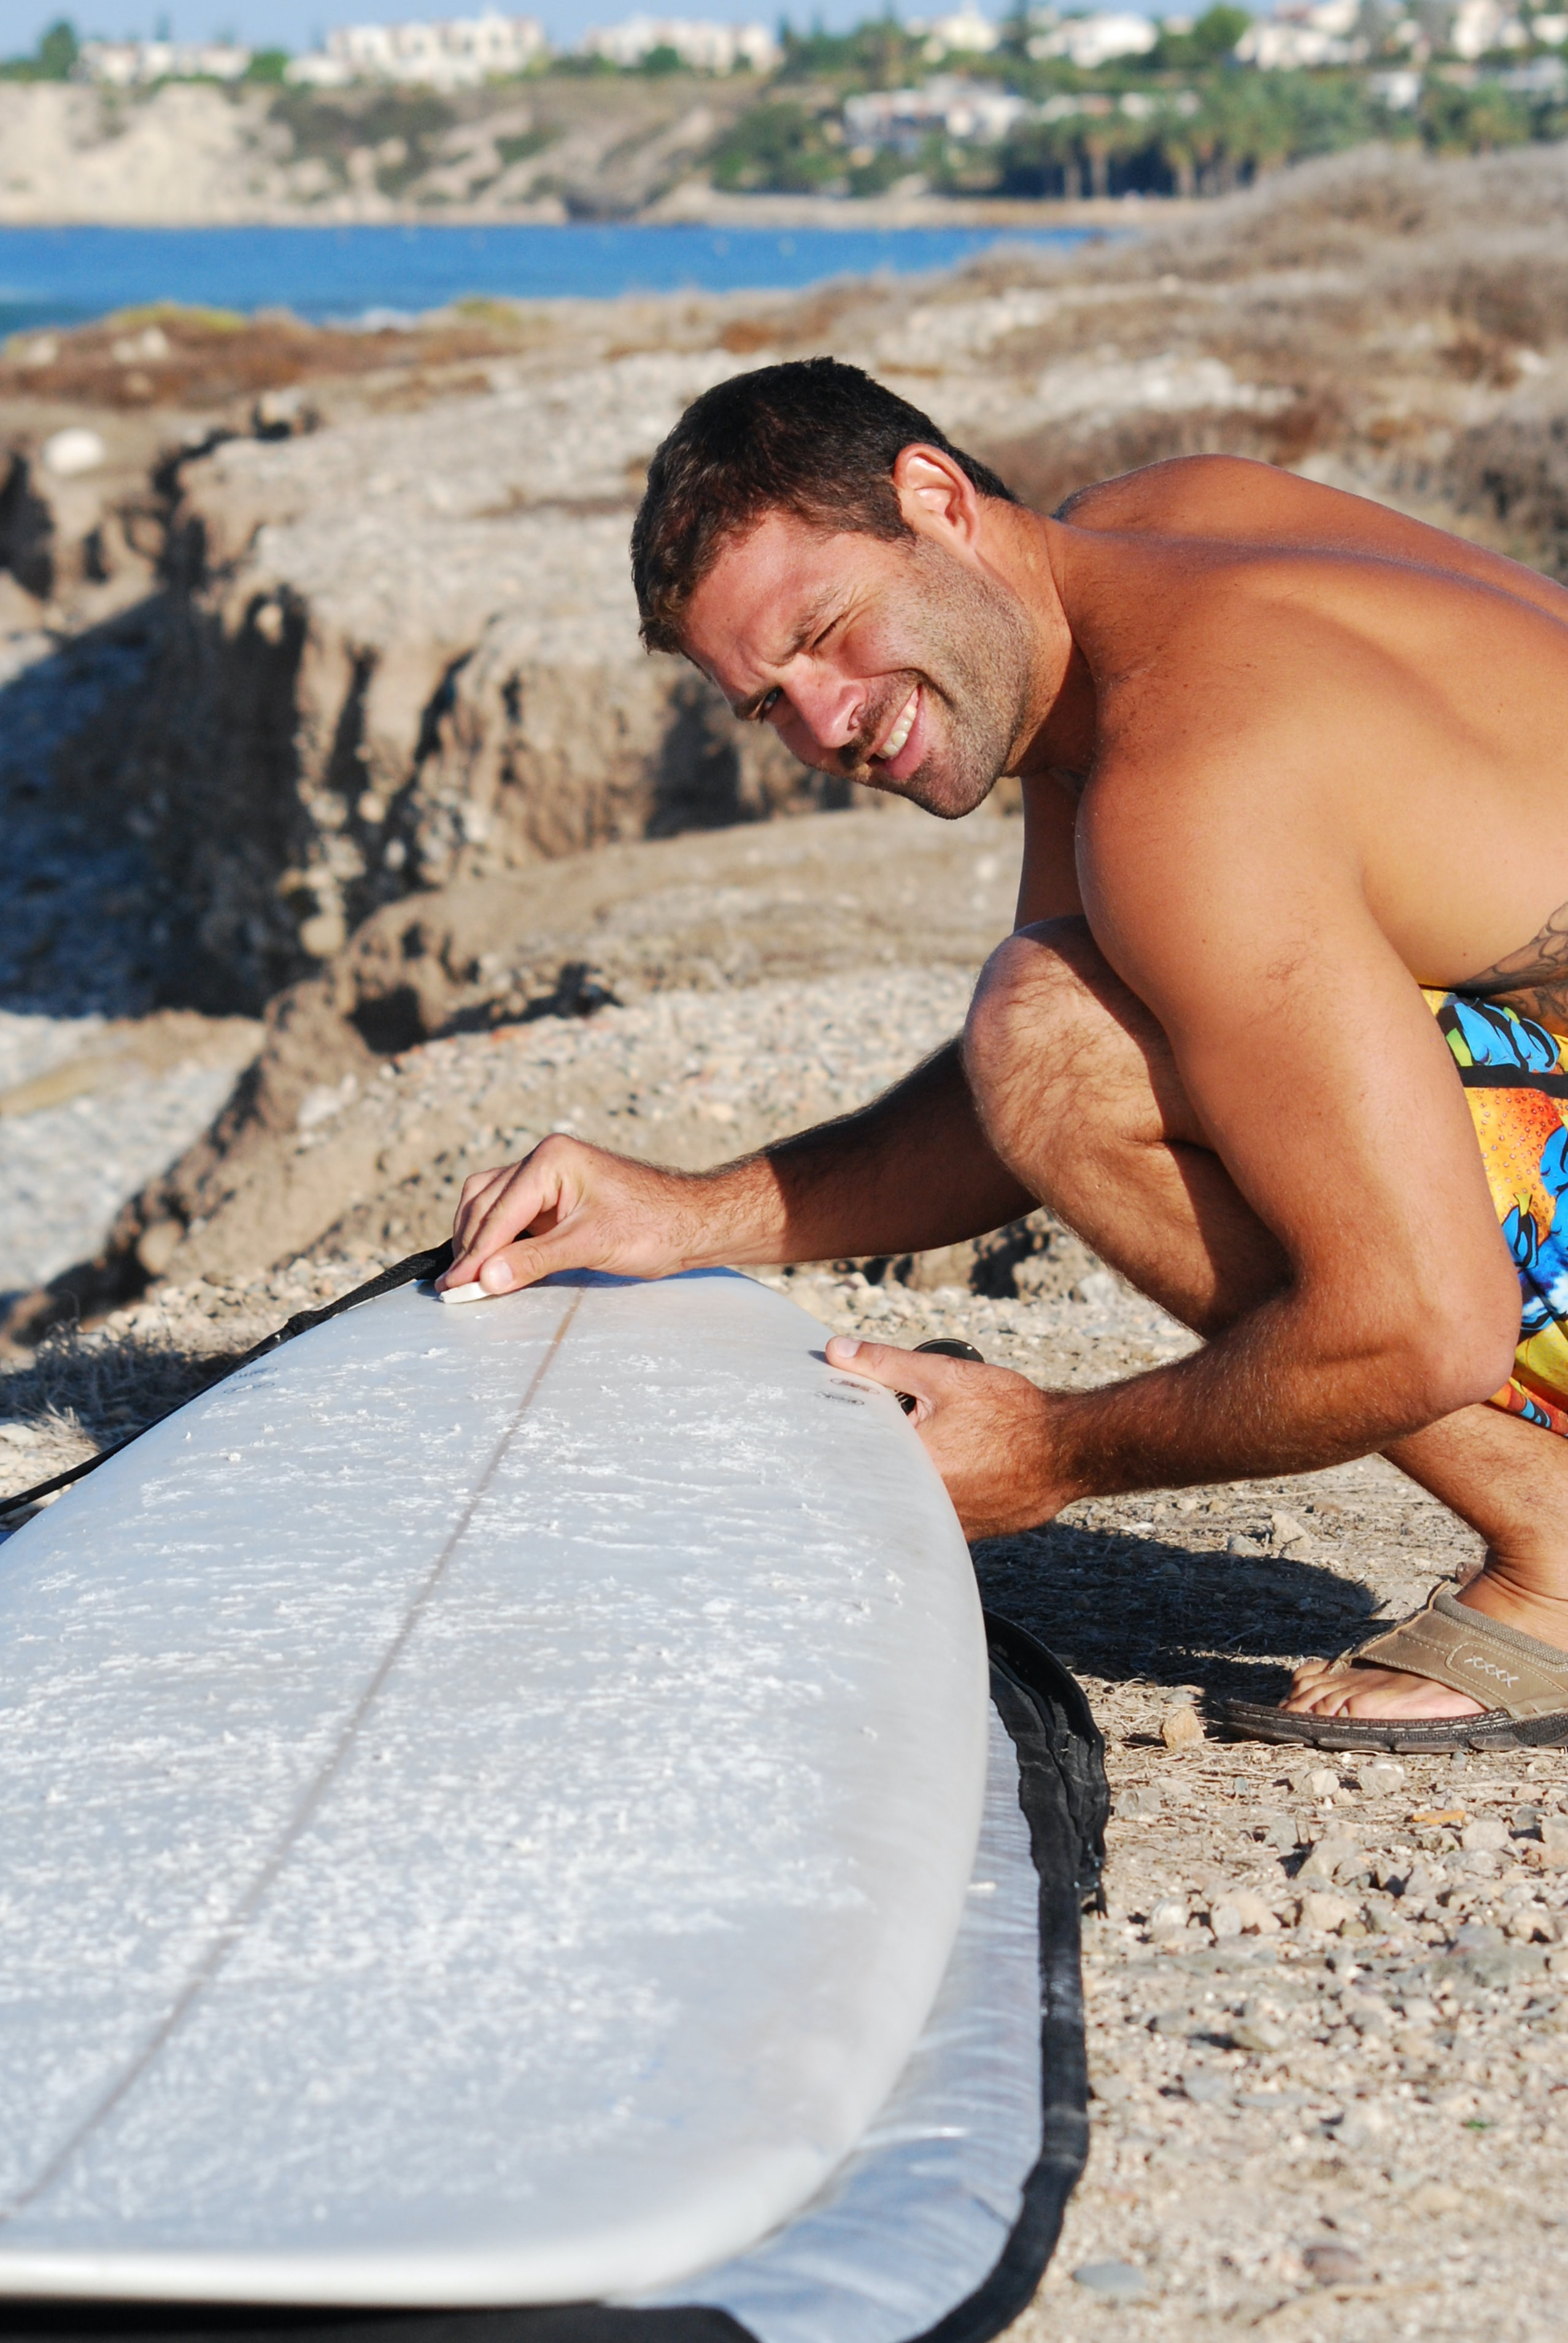 man scraping gray surfboard